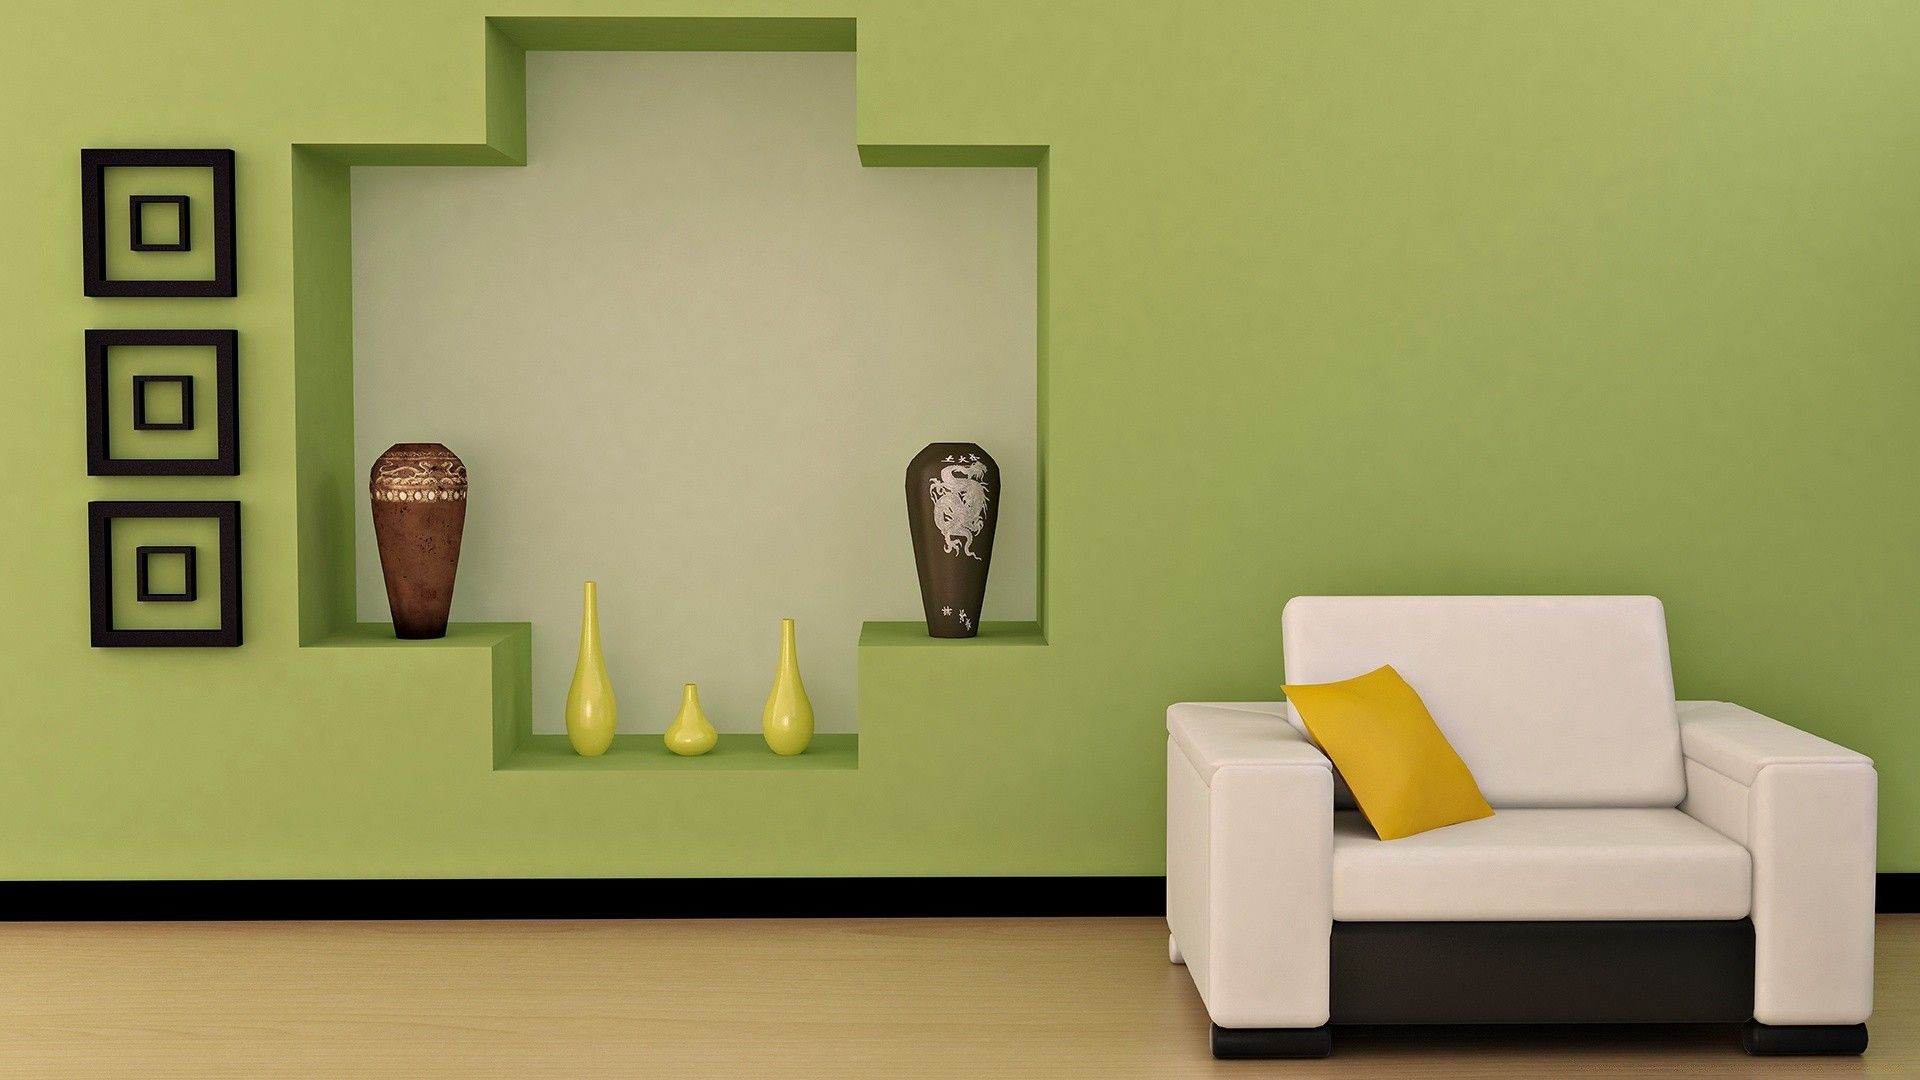 Furniture Wallpaper and Background